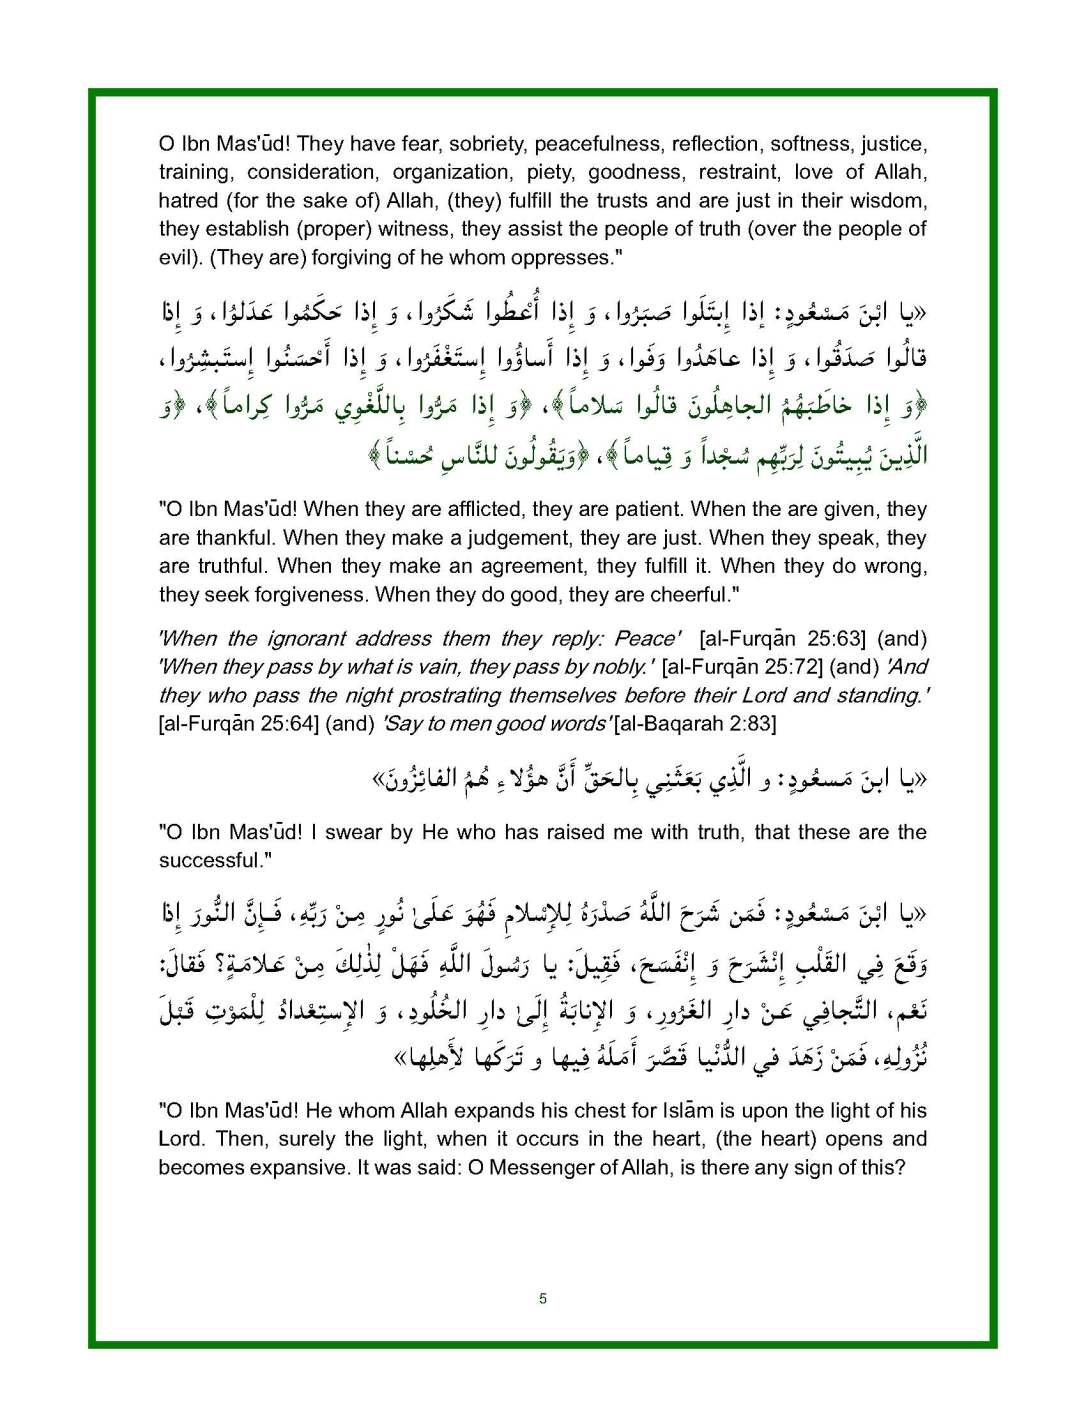 Spiritual-Advice-of-the-Messenger-of-Allah-for-Ibn-Masud-unlocked_Page_05